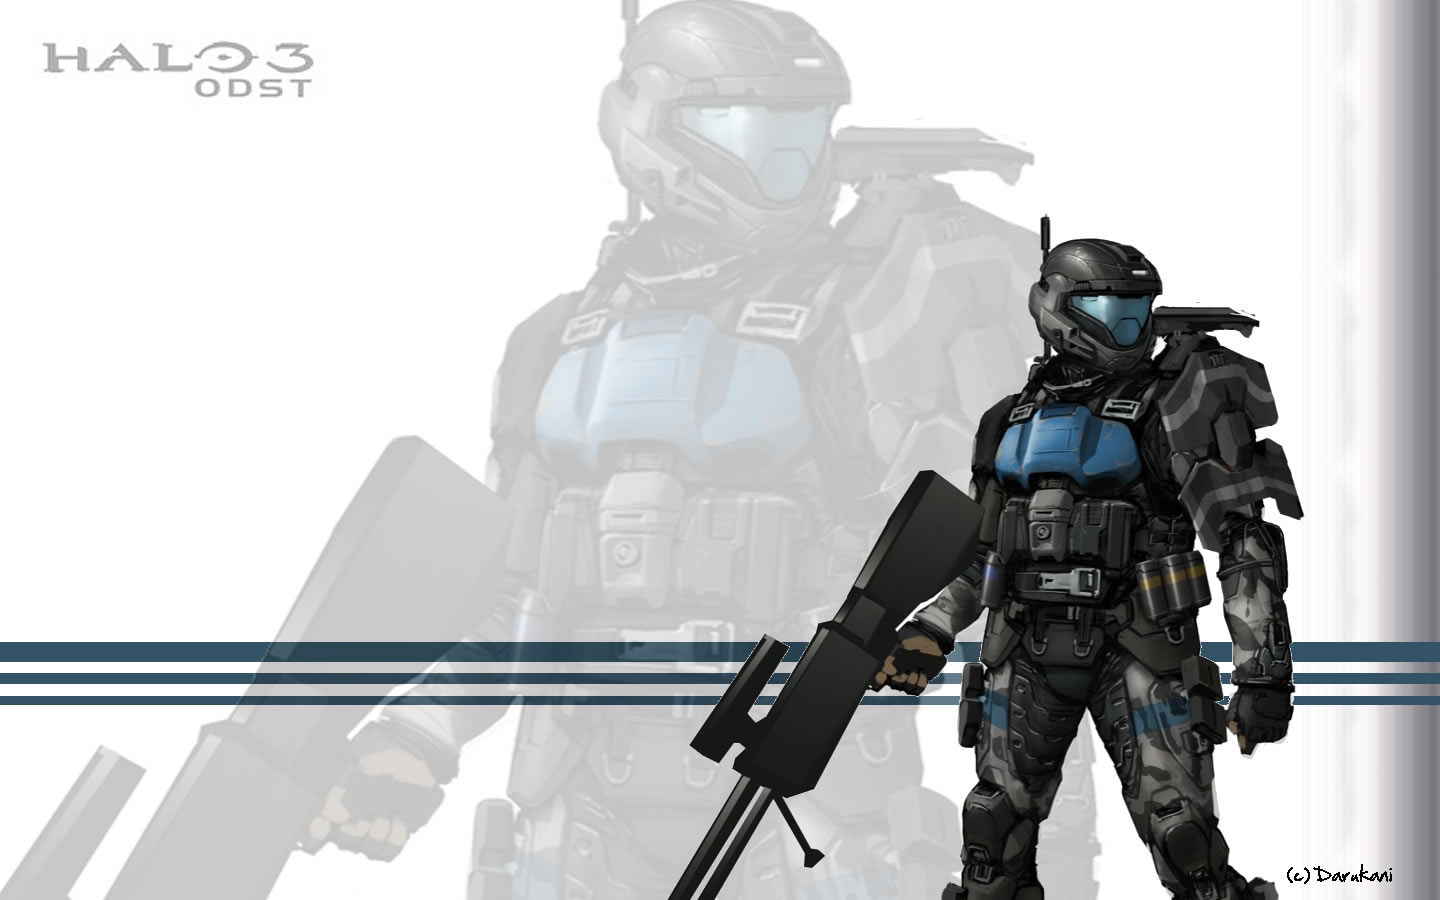 Halo 3 ODST Wallpaper by VMASTER on DeviantArt